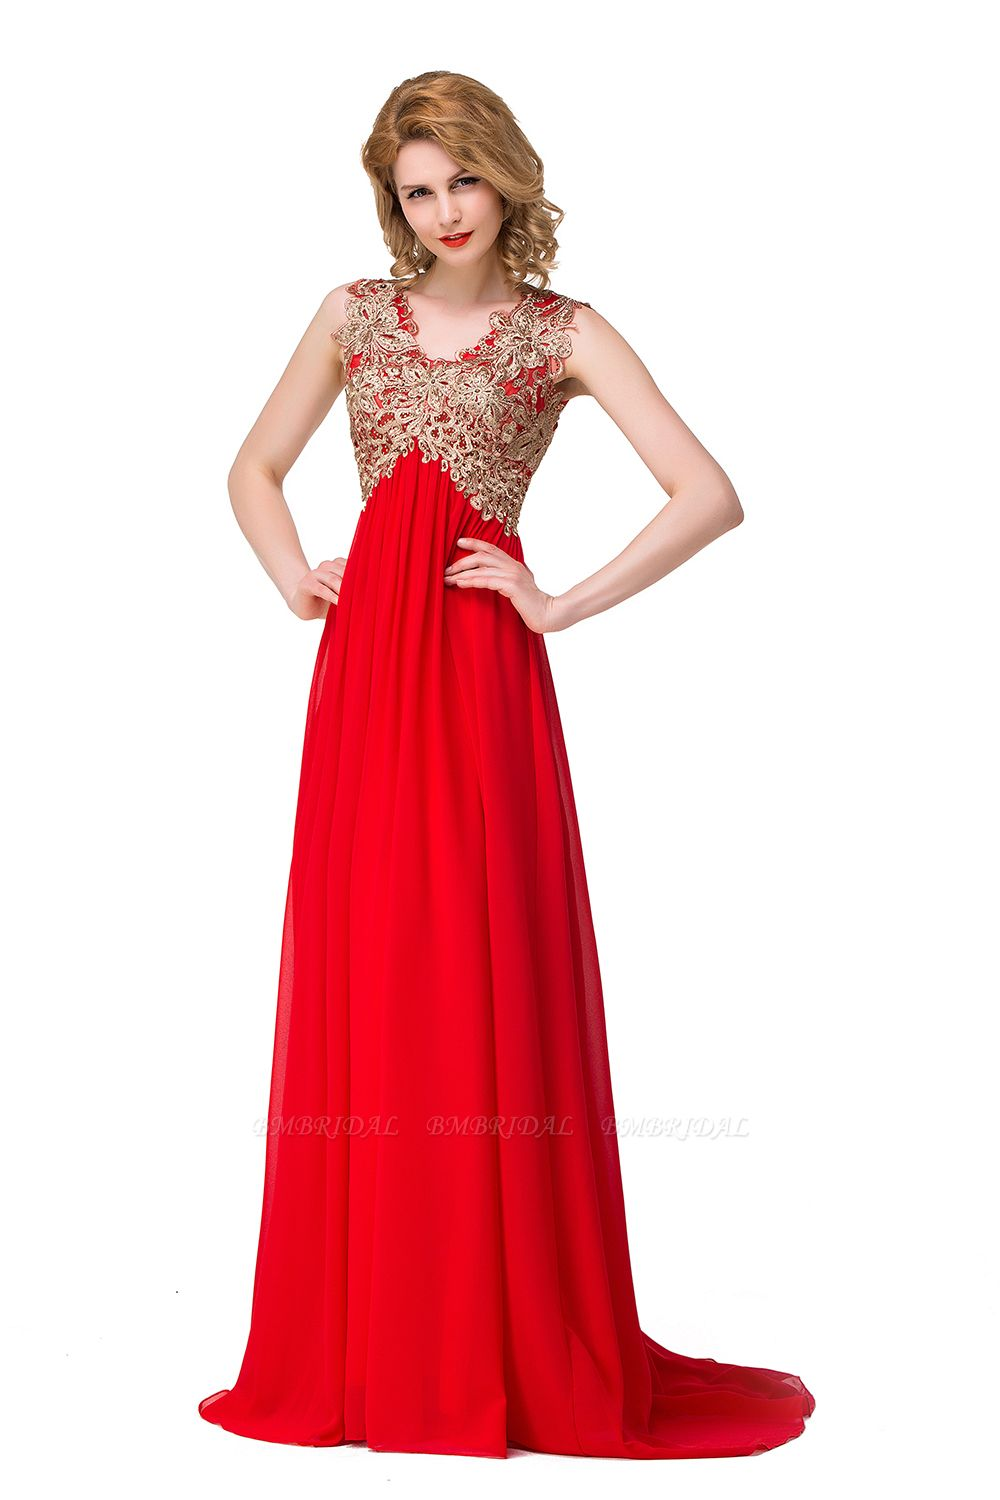 BMbridal Long Prom Lace Dress Evening Dress with Sequins